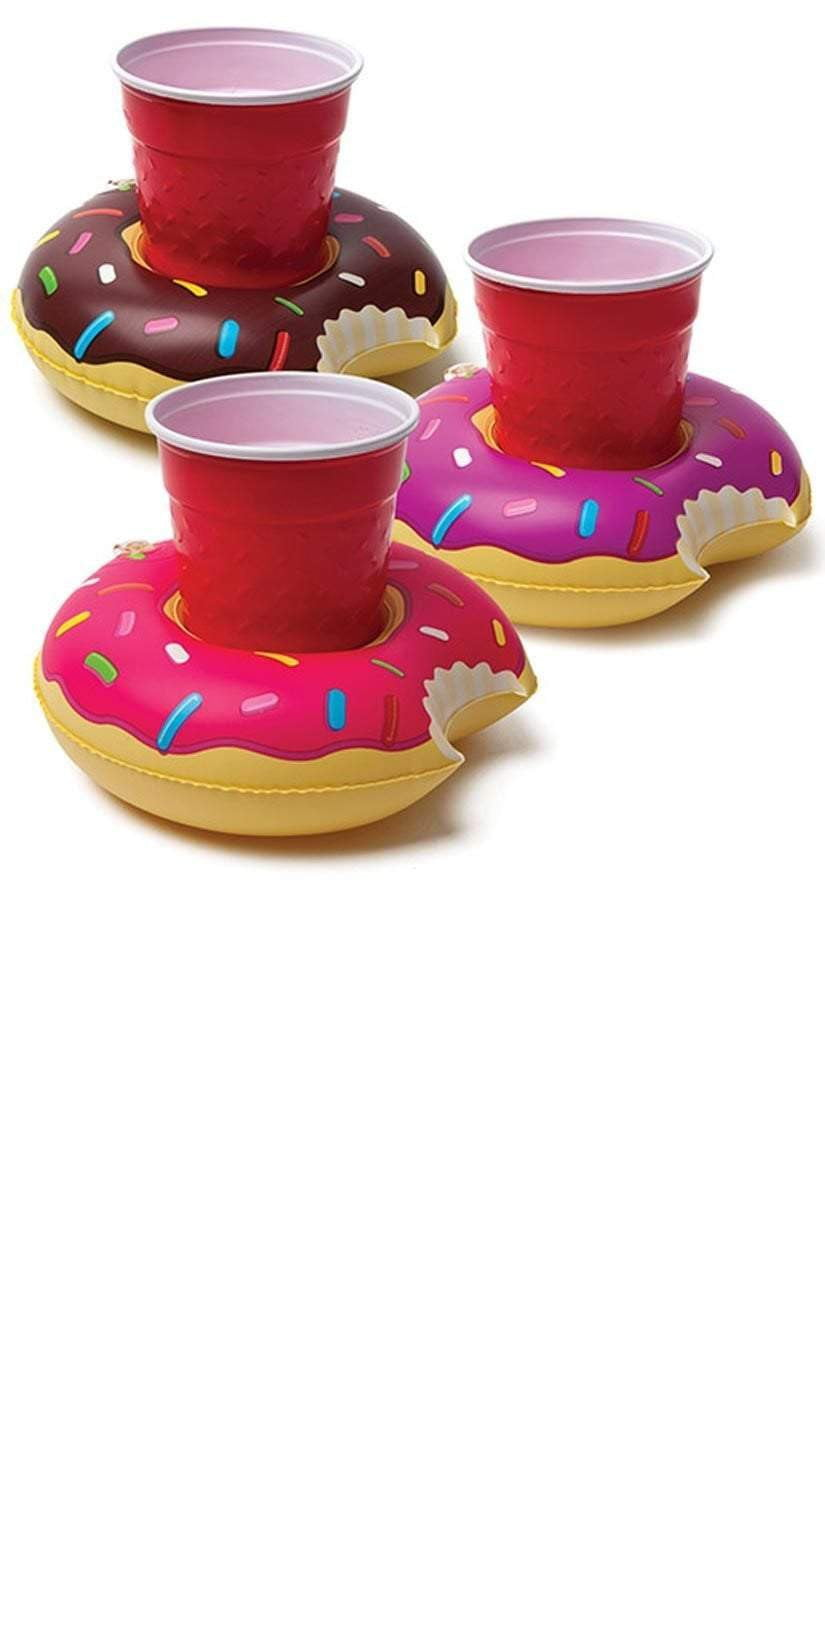 Big Mouth Frosted Donuts Beverage Boat BMDF-0001: